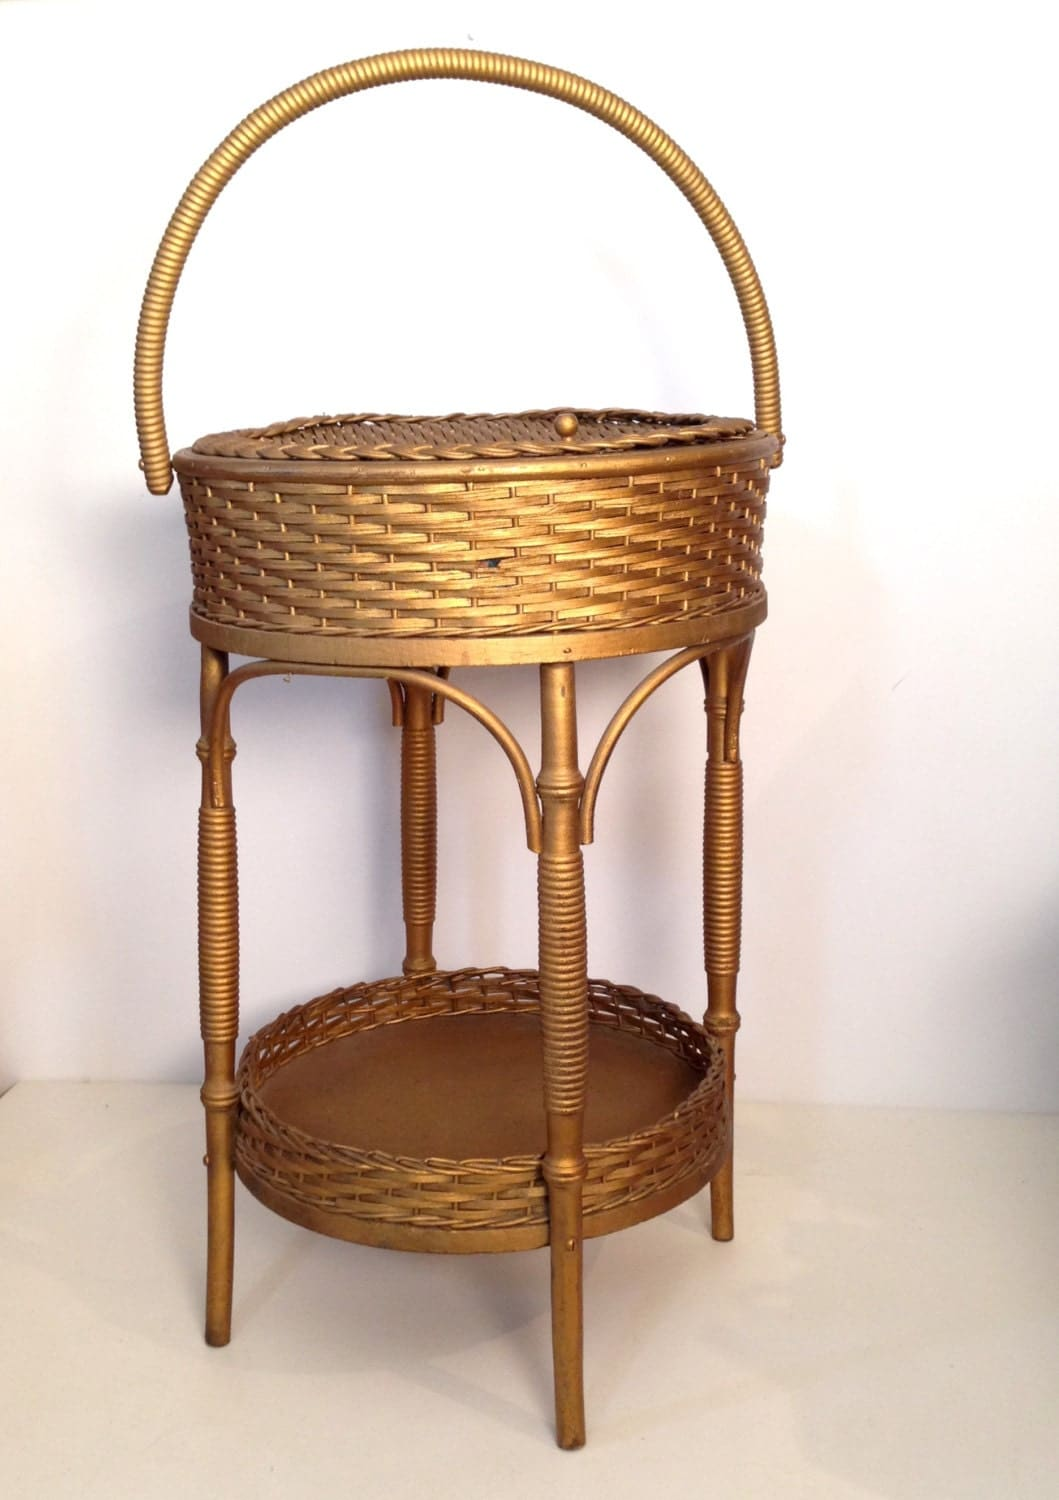 Vintage Wicker Sewing Basket 44